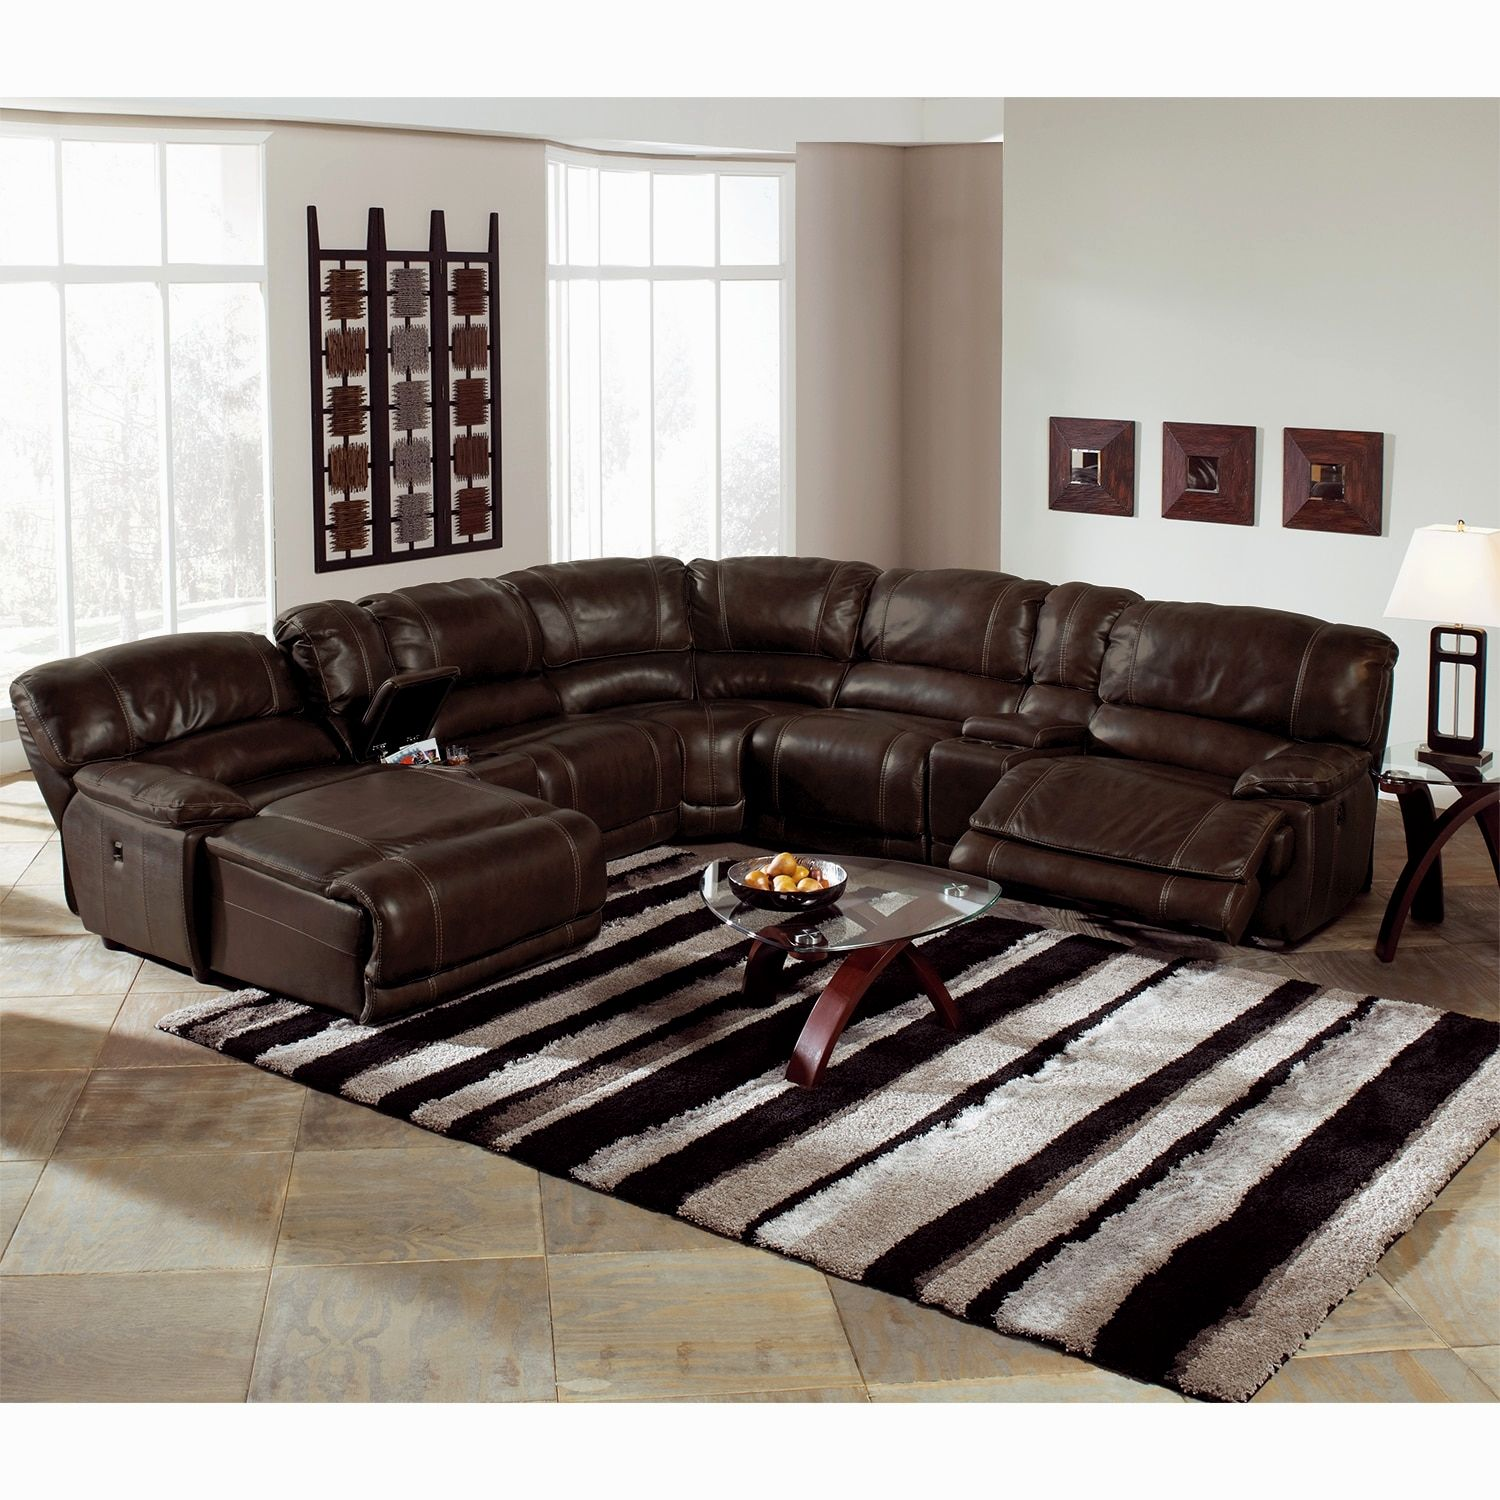 latest costco recliner sofa ideas-Beautiful Costco Recliner sofa Wallpaper